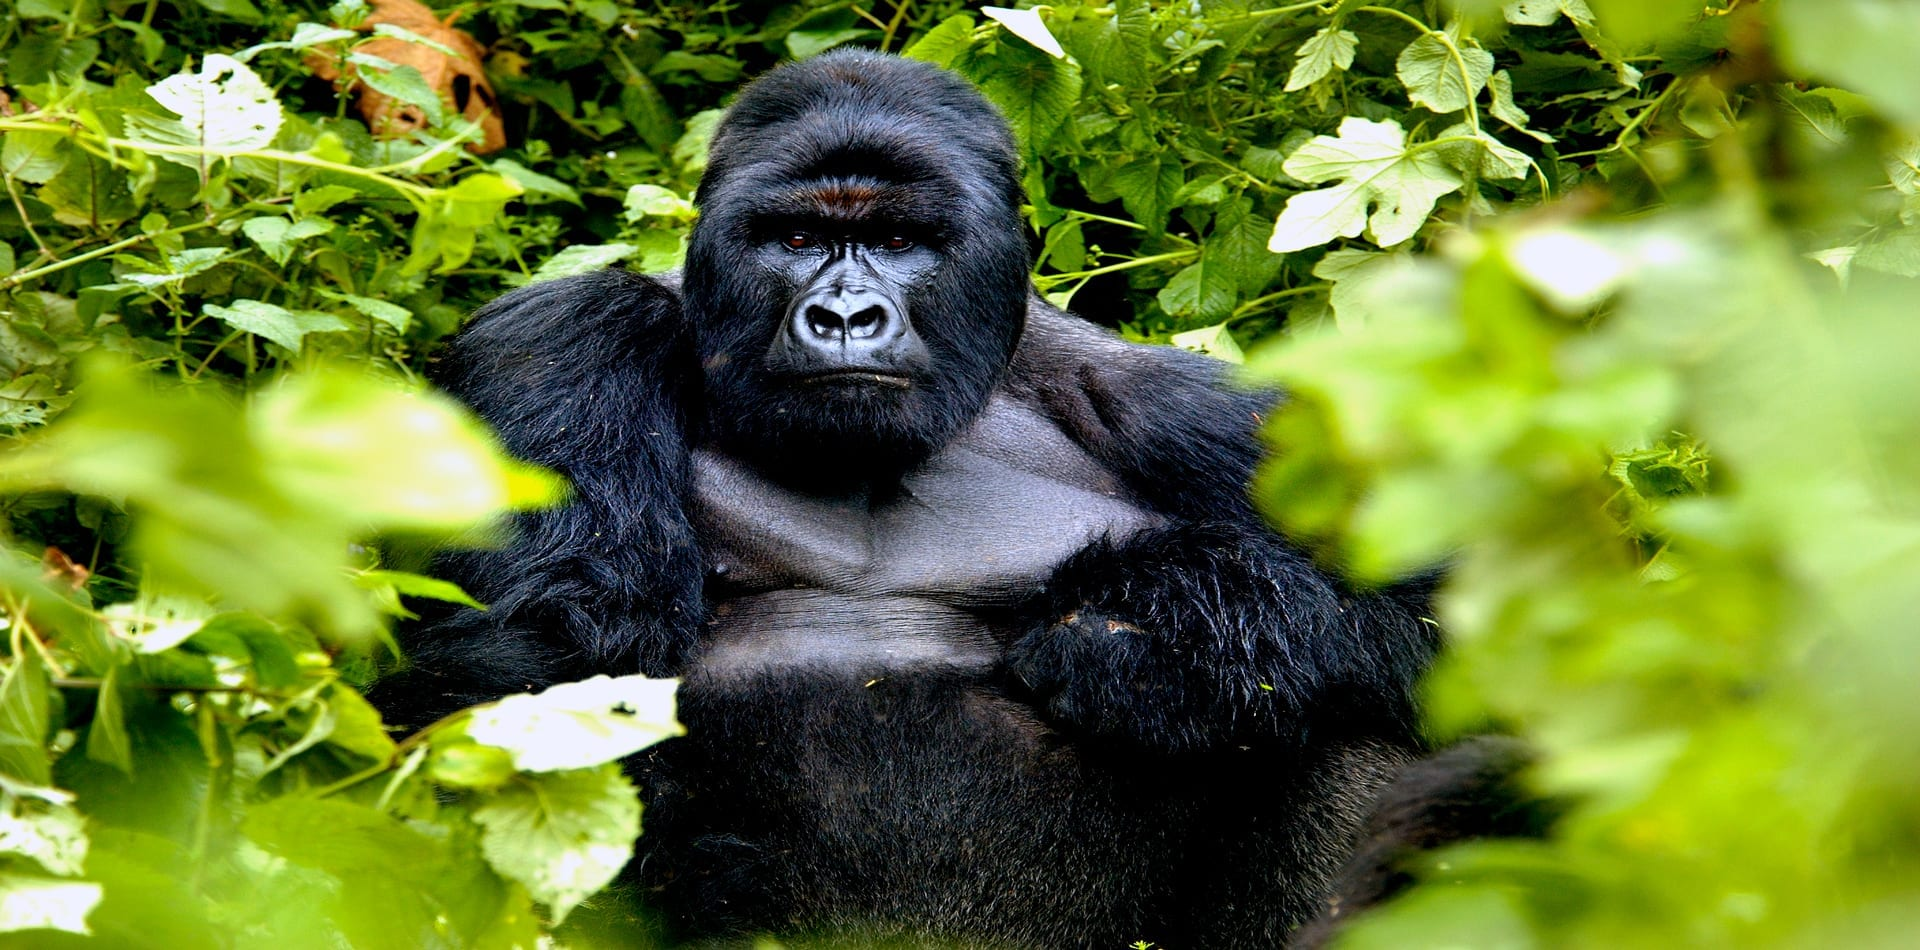 HERO Mountain Gorilla Republic of Congo